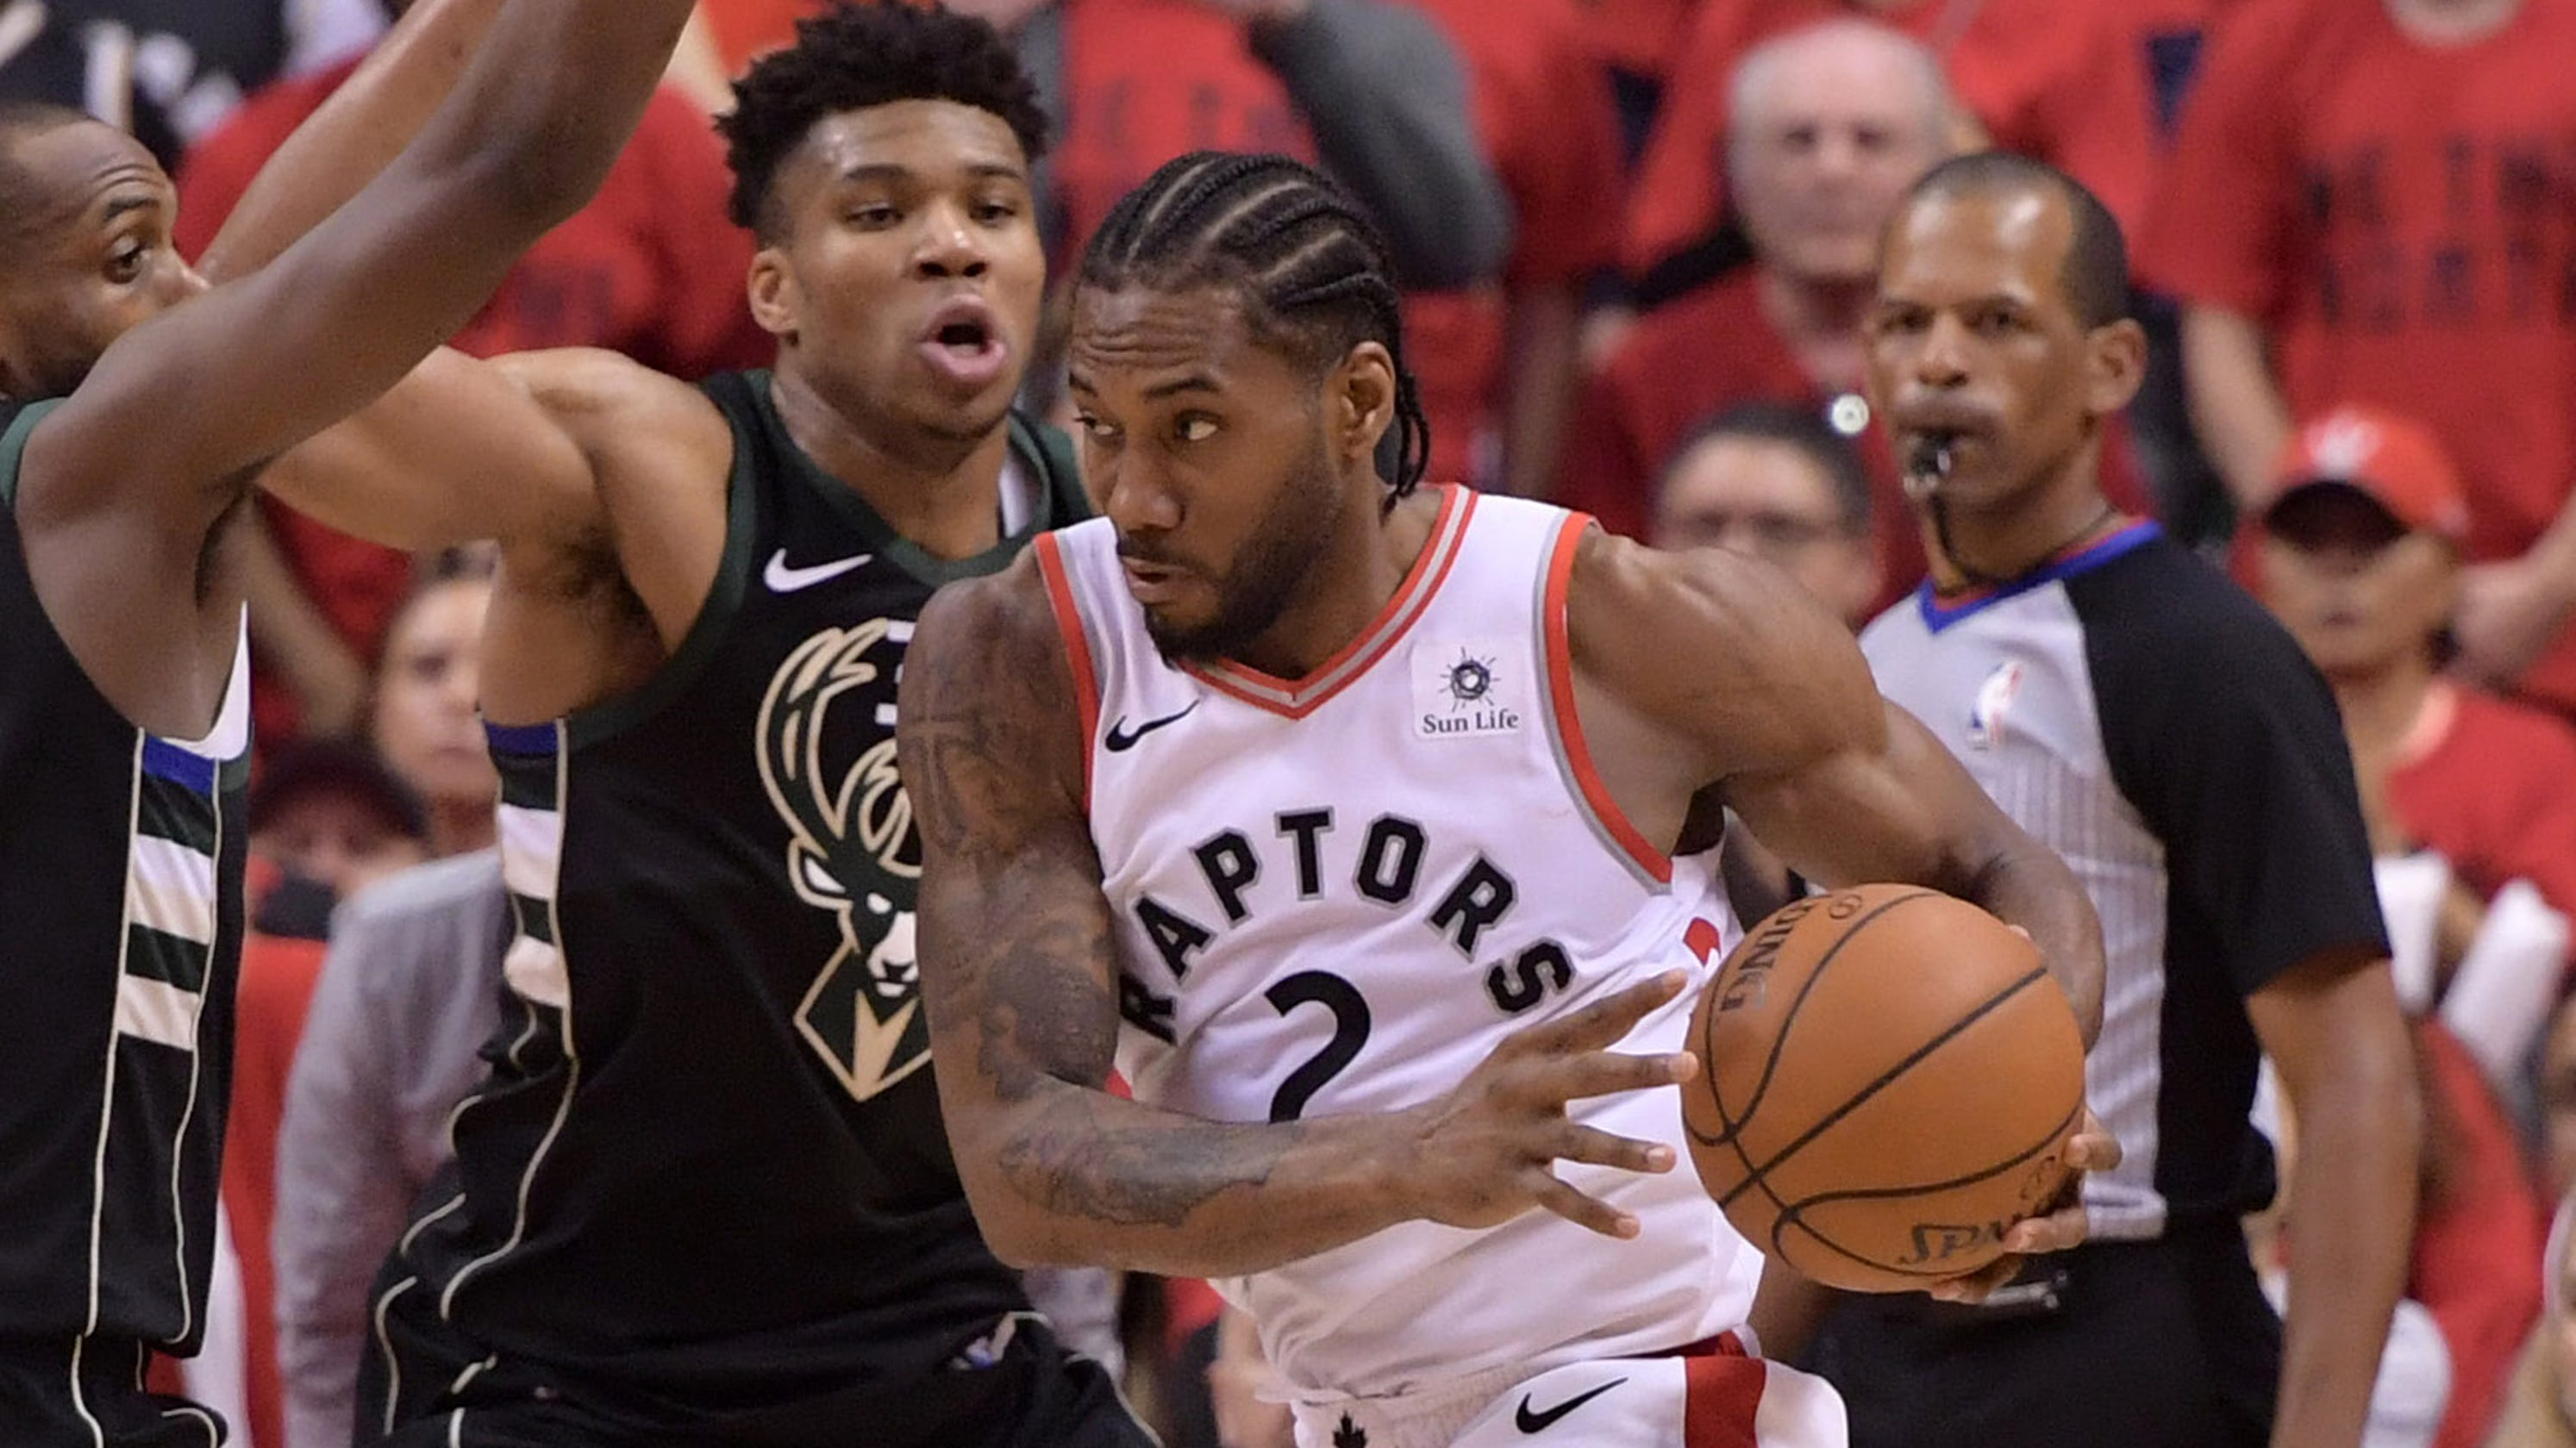 Opinion: How the Raptors turned the series around to reach the NBA Finals